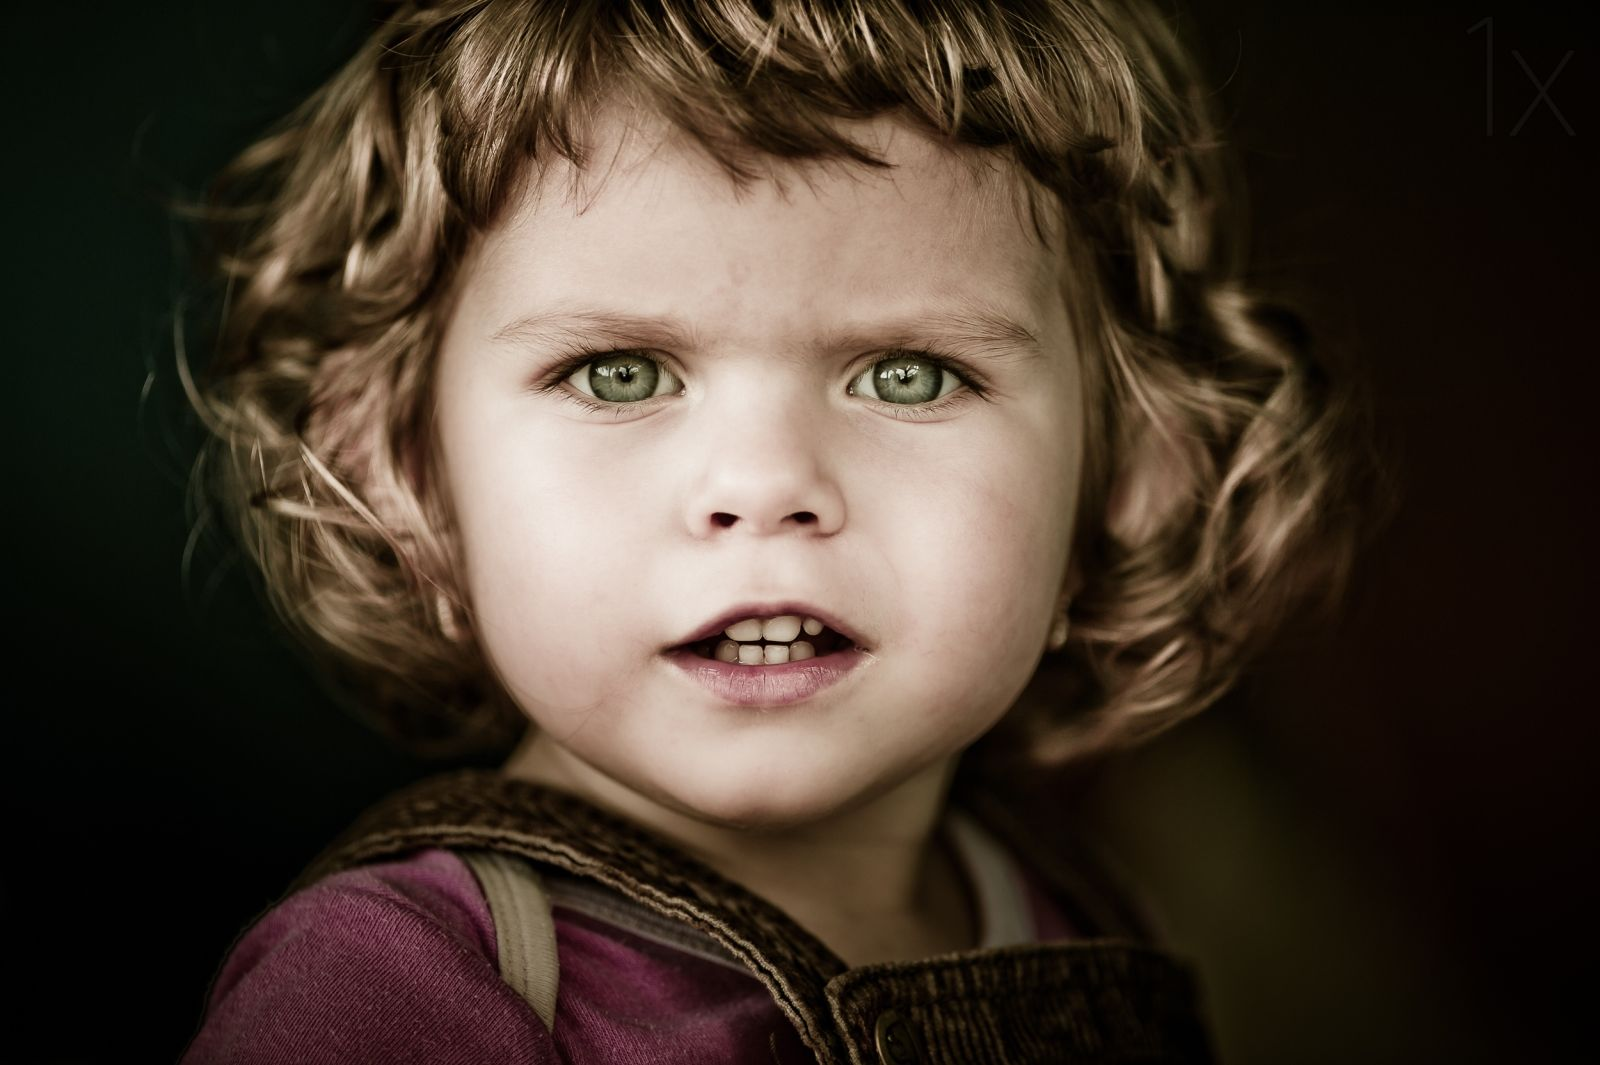 portrait photography boy kid by dominic cristofor